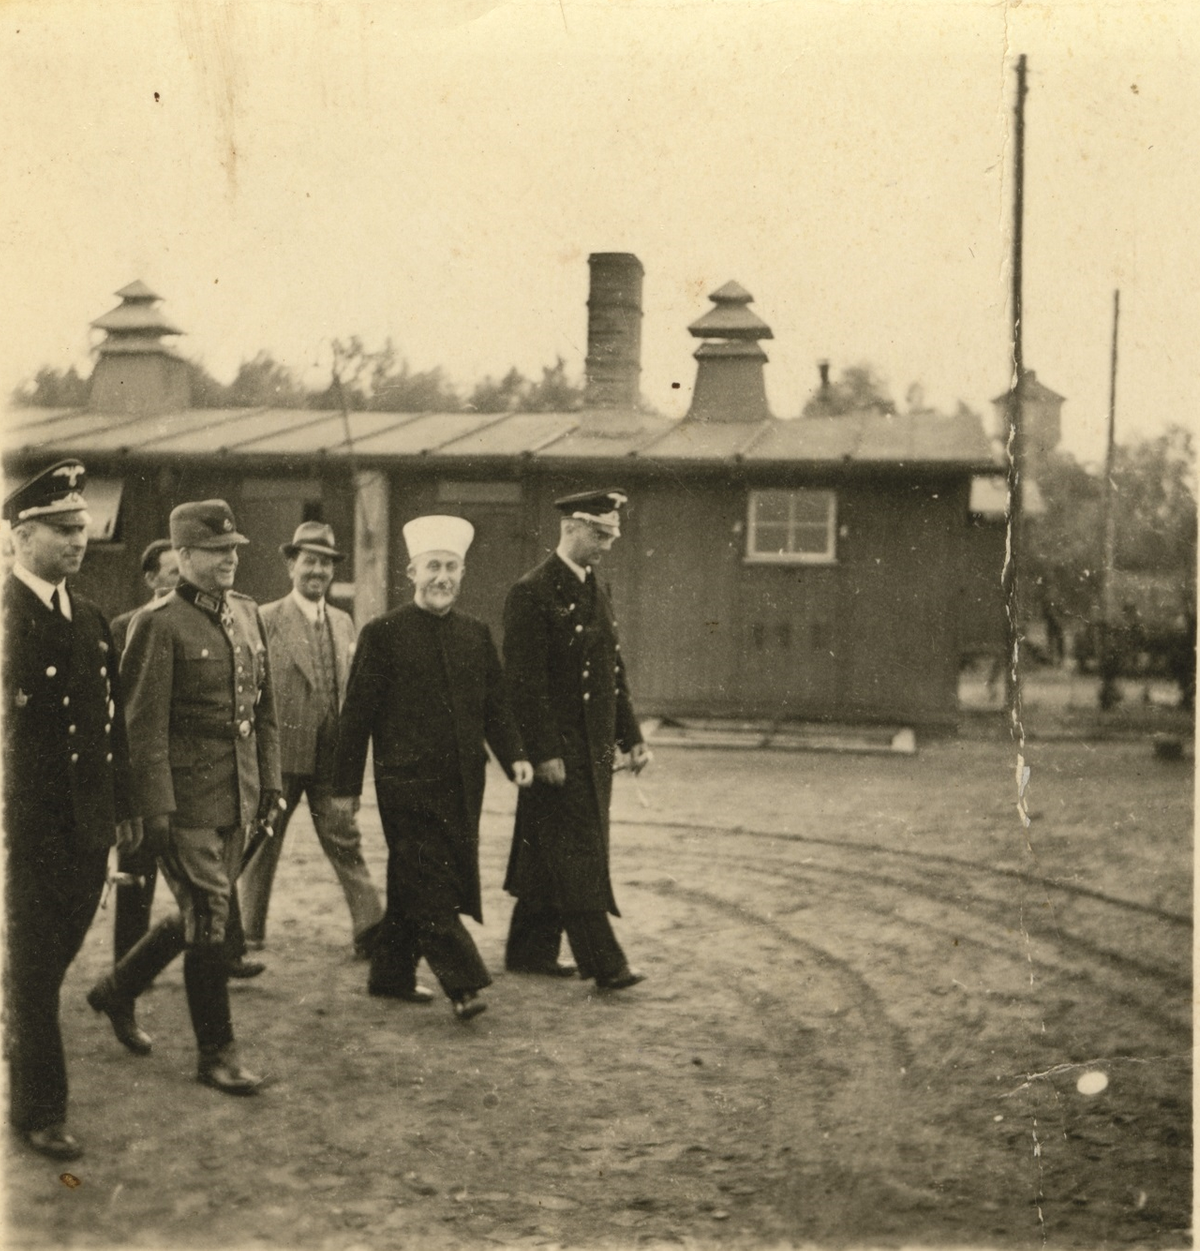 Photo 2, with Arthur Seyss-Inquart appearing second from left